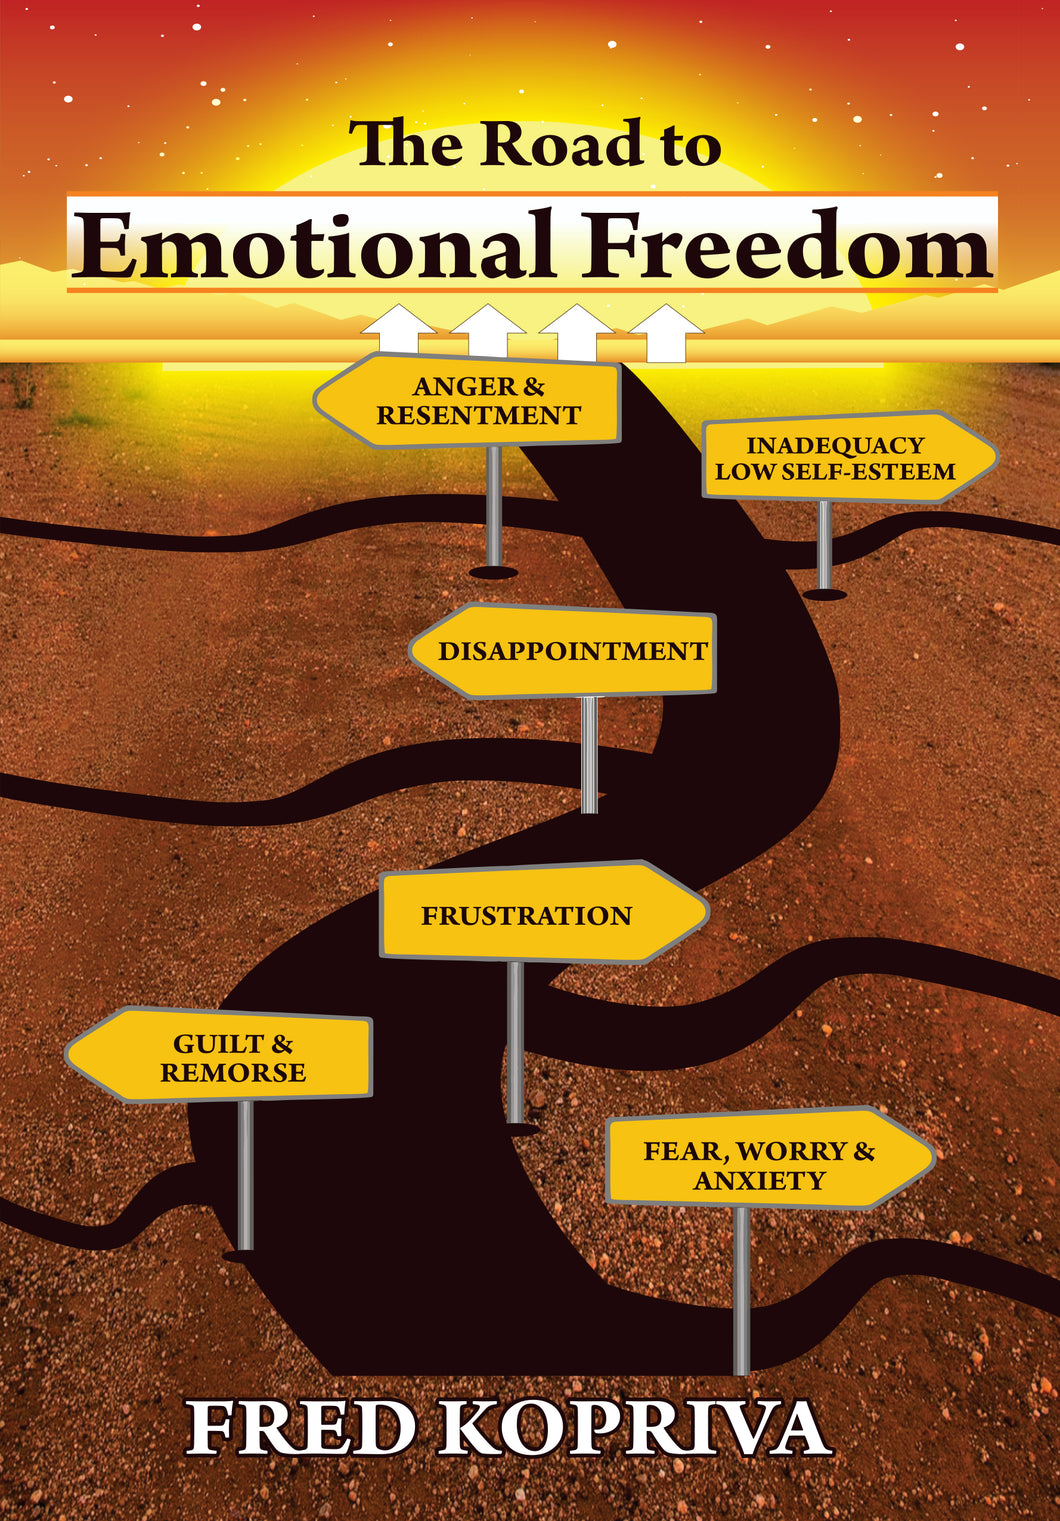 The Road to Emotional Freedom